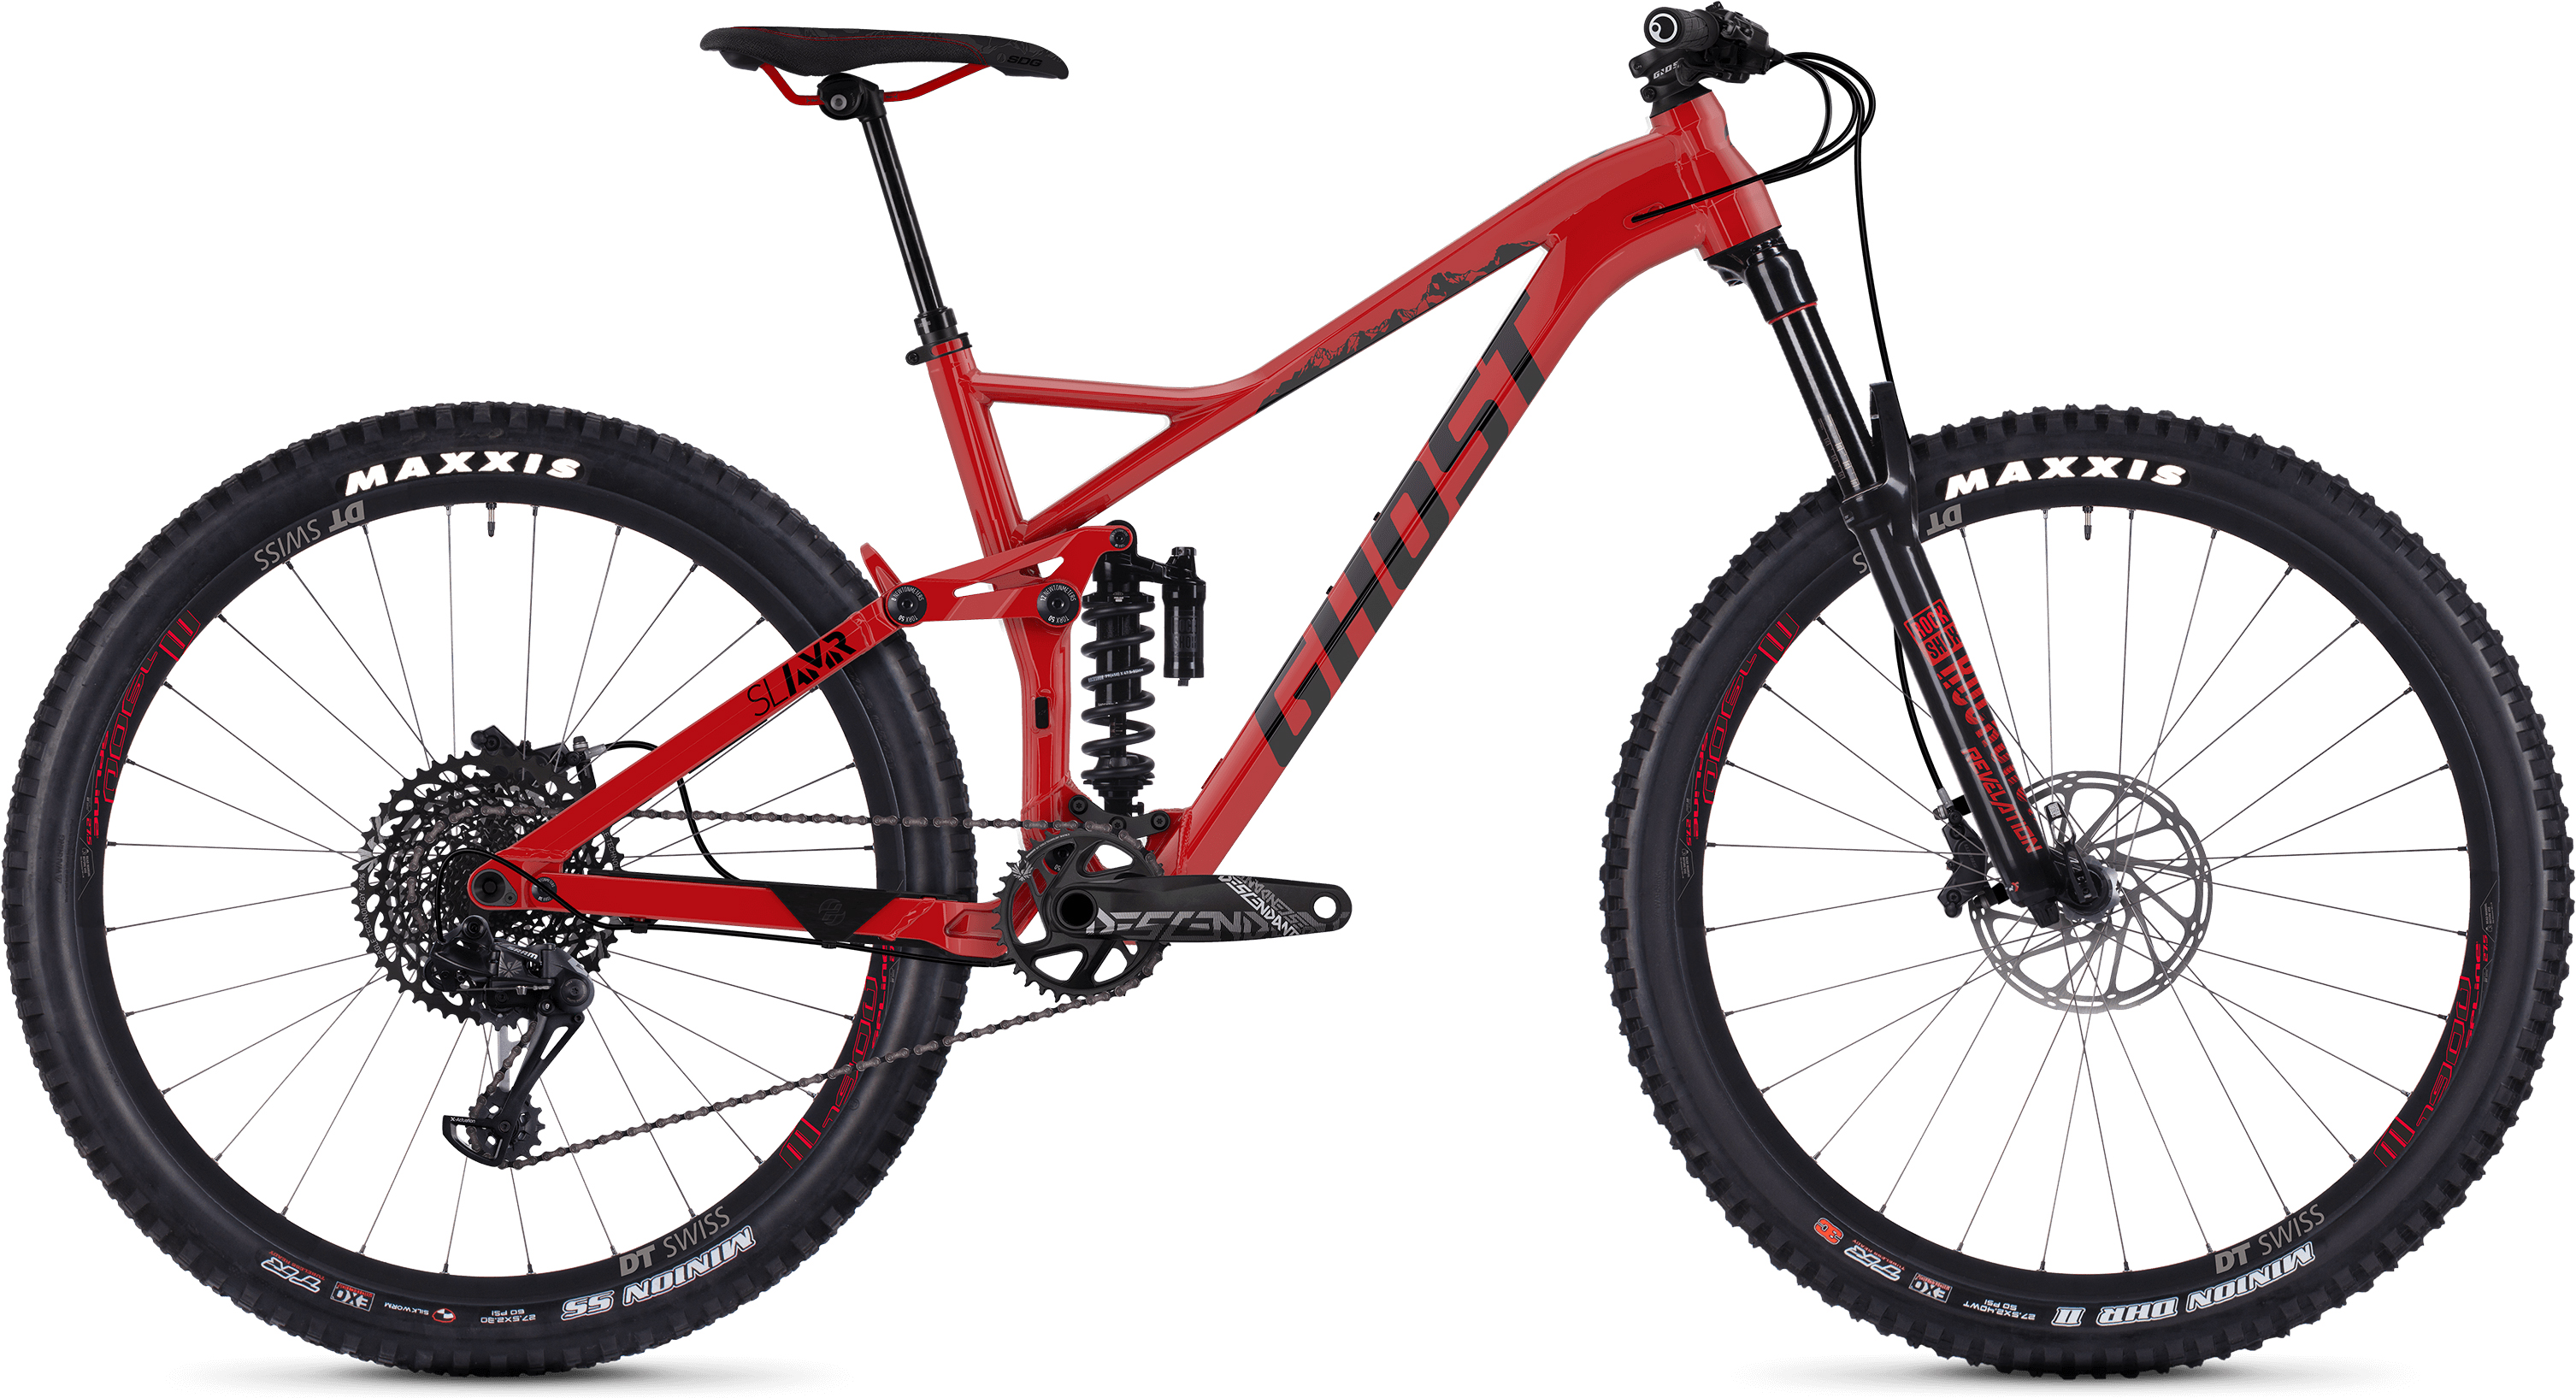 Ghost SL AMR 6.7 (2019) Full Suspension Bike | Mountainbikes